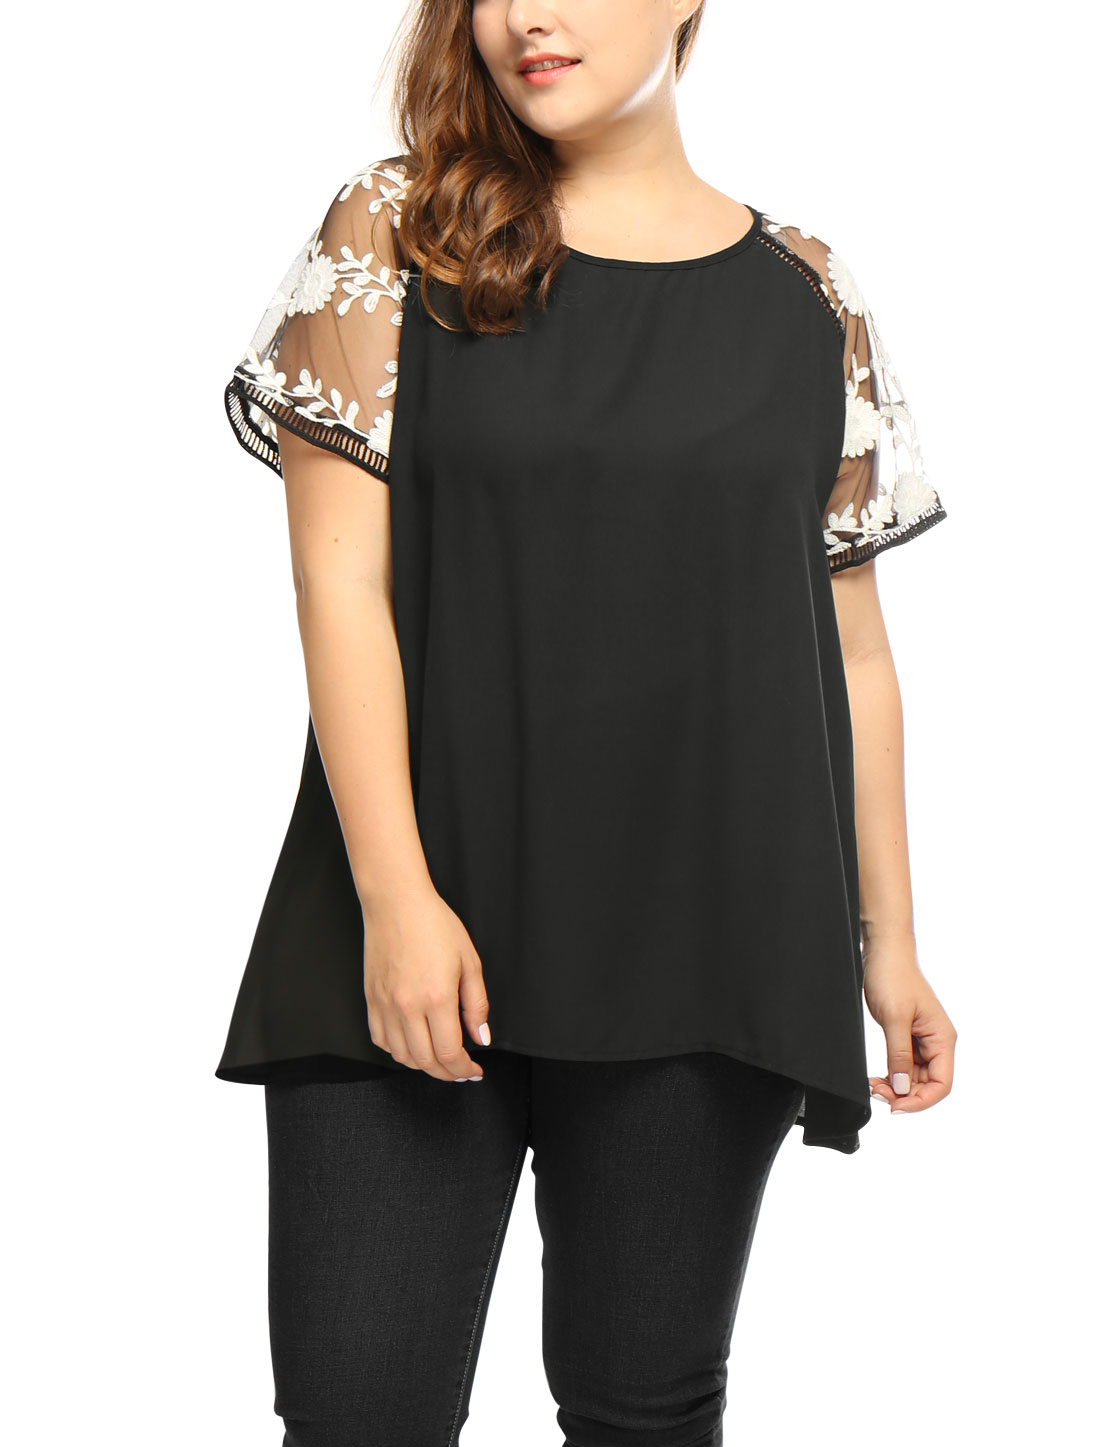 Women Plus Size Crochet Mesh Panel Sheer Raglan Sleeves Top Black 2X